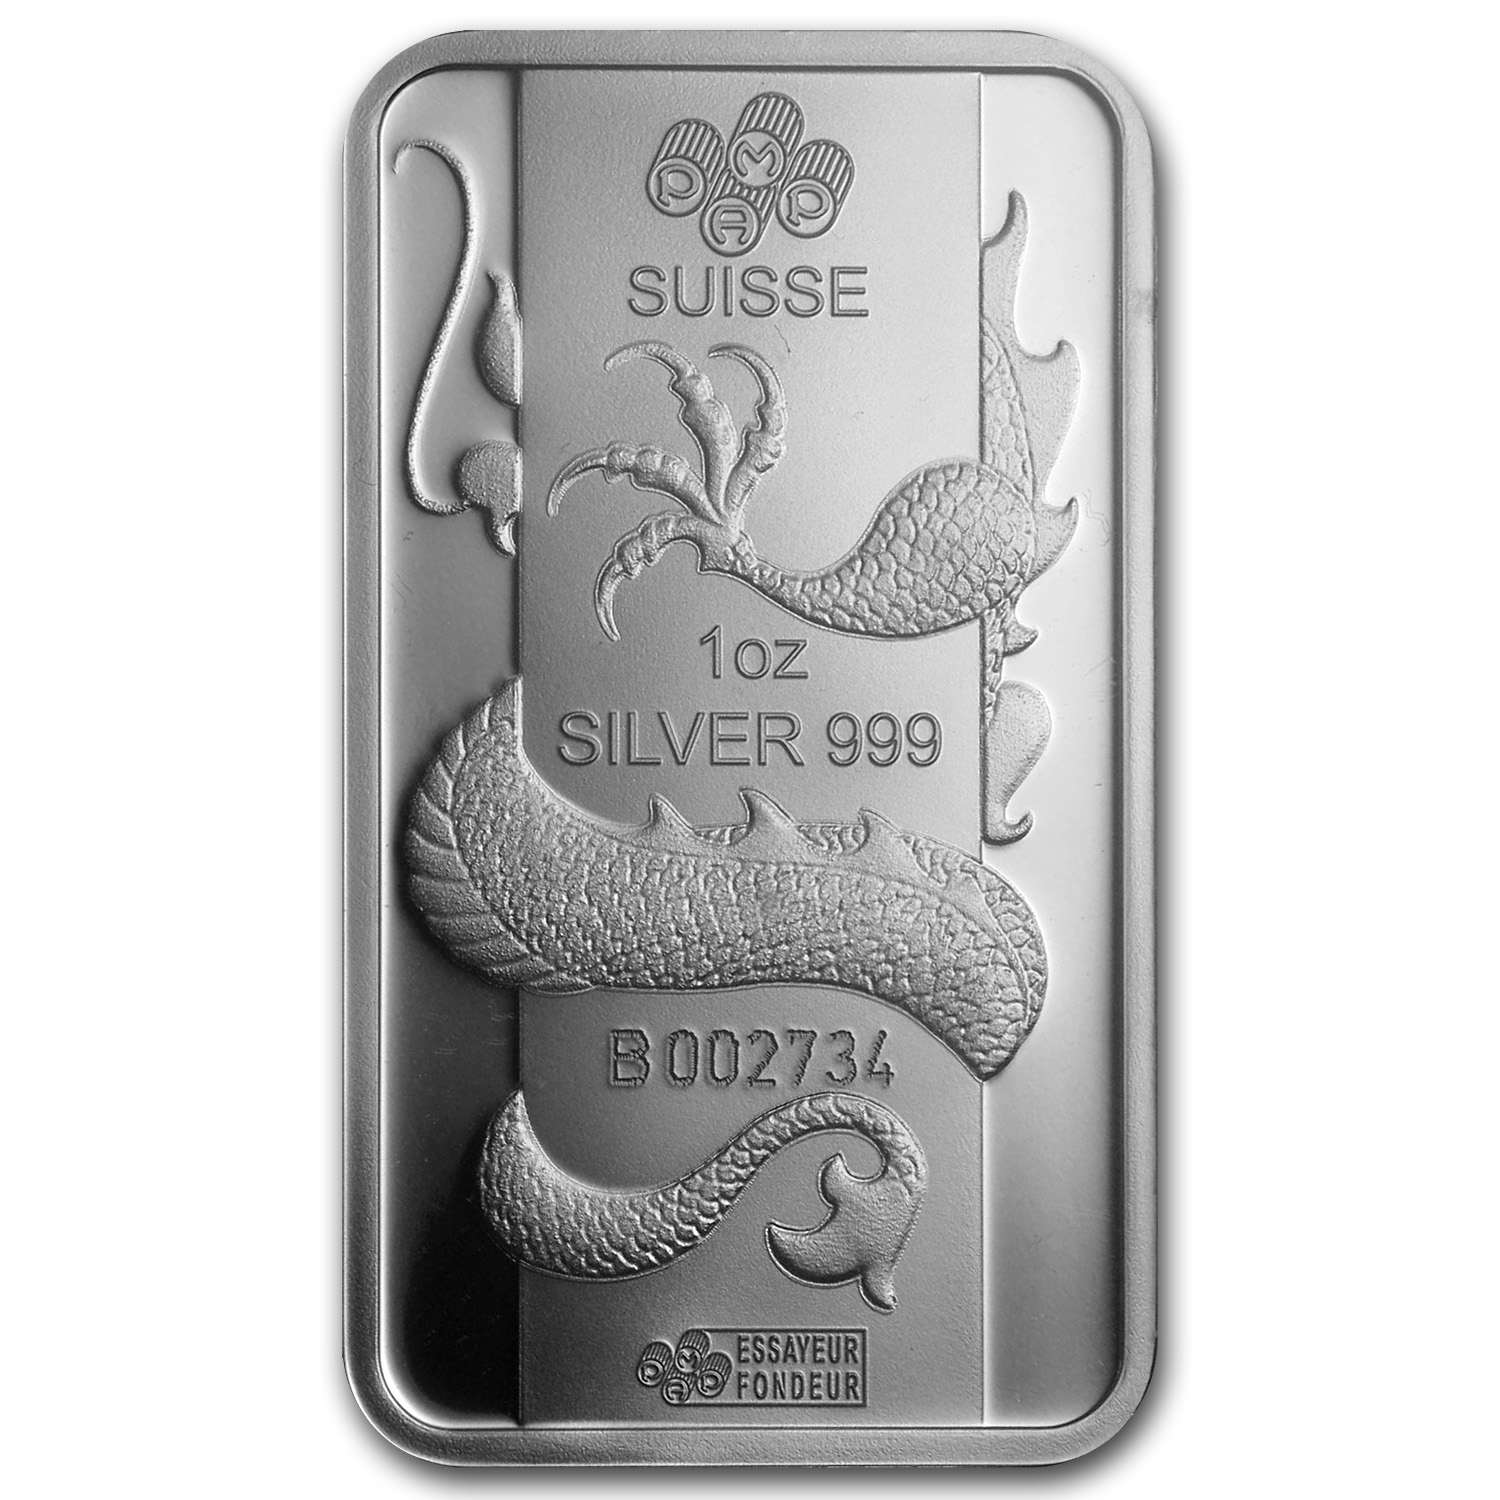 1 oz Silver Bars - Pamp Suisse (Year of the Dragon)